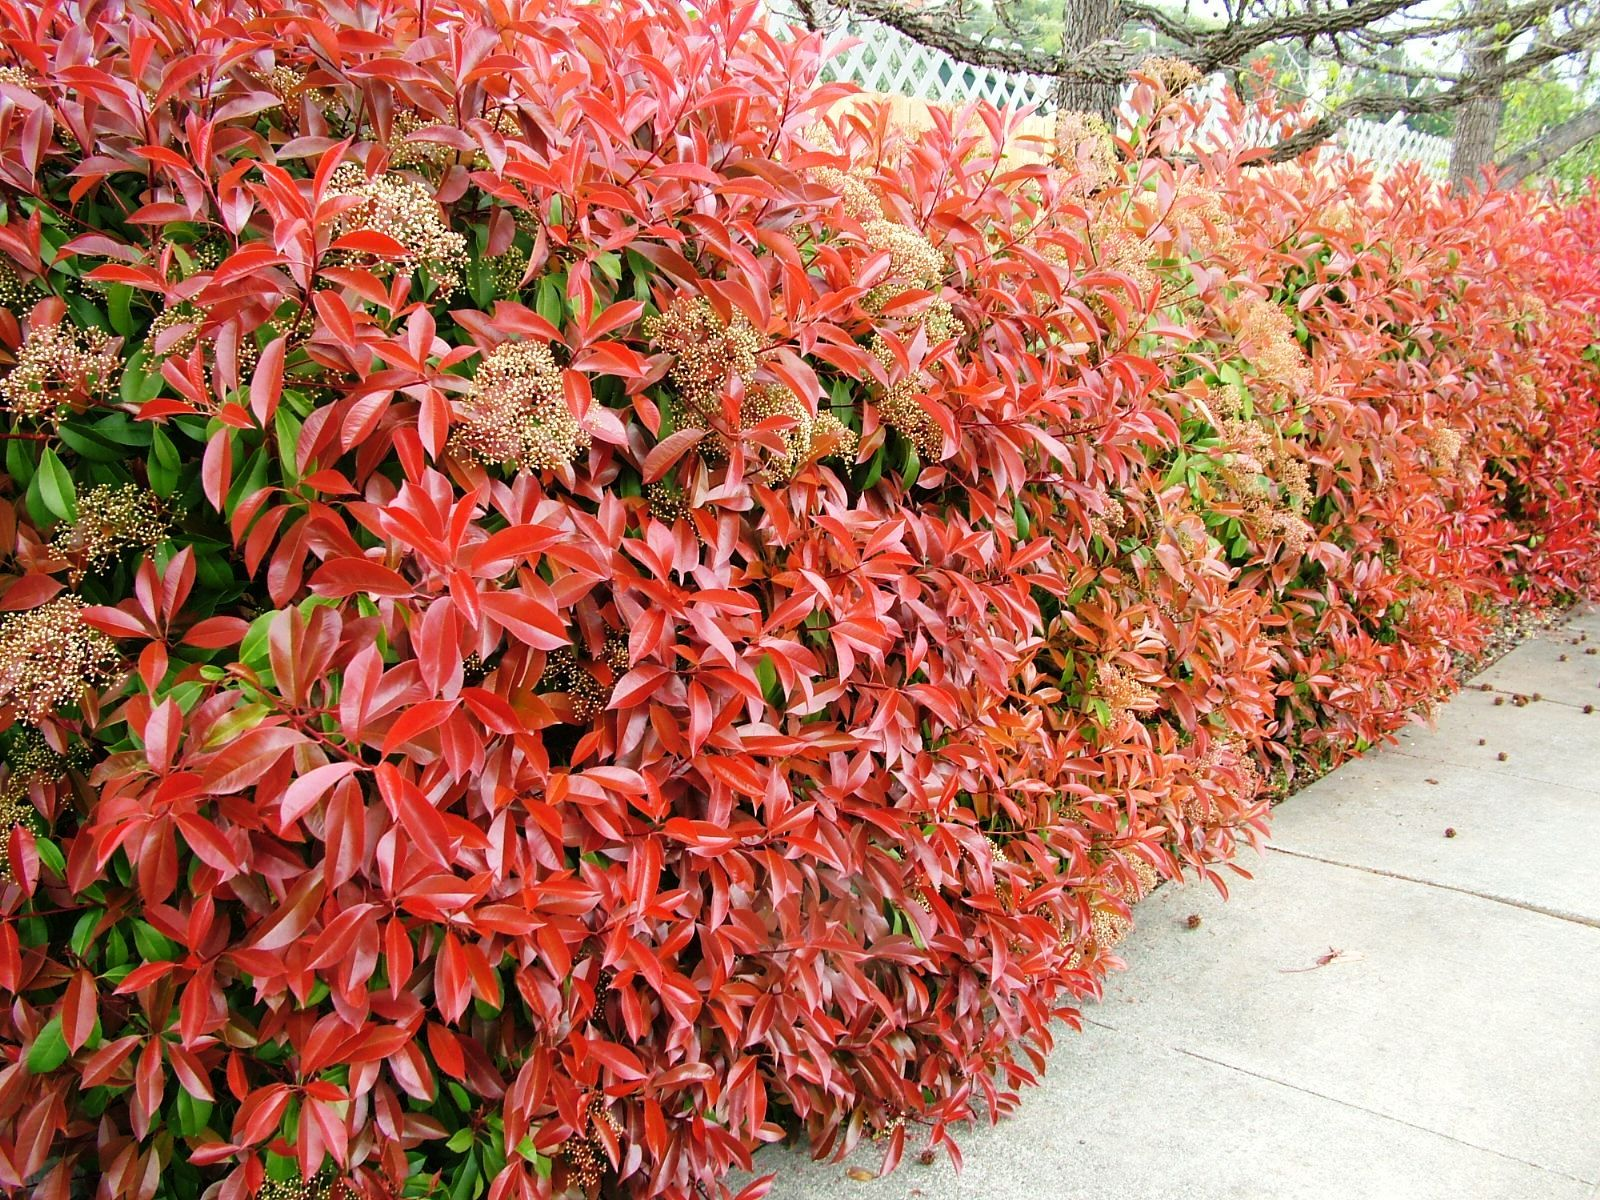 474052503786897817acab3bb75b7fd6 Red Broadleaf Houseplants on flowers red, berries red, cactus red, ornamental grasses red, animals red, pots red, design red, peppers red, nature red, mums red, orchids red,